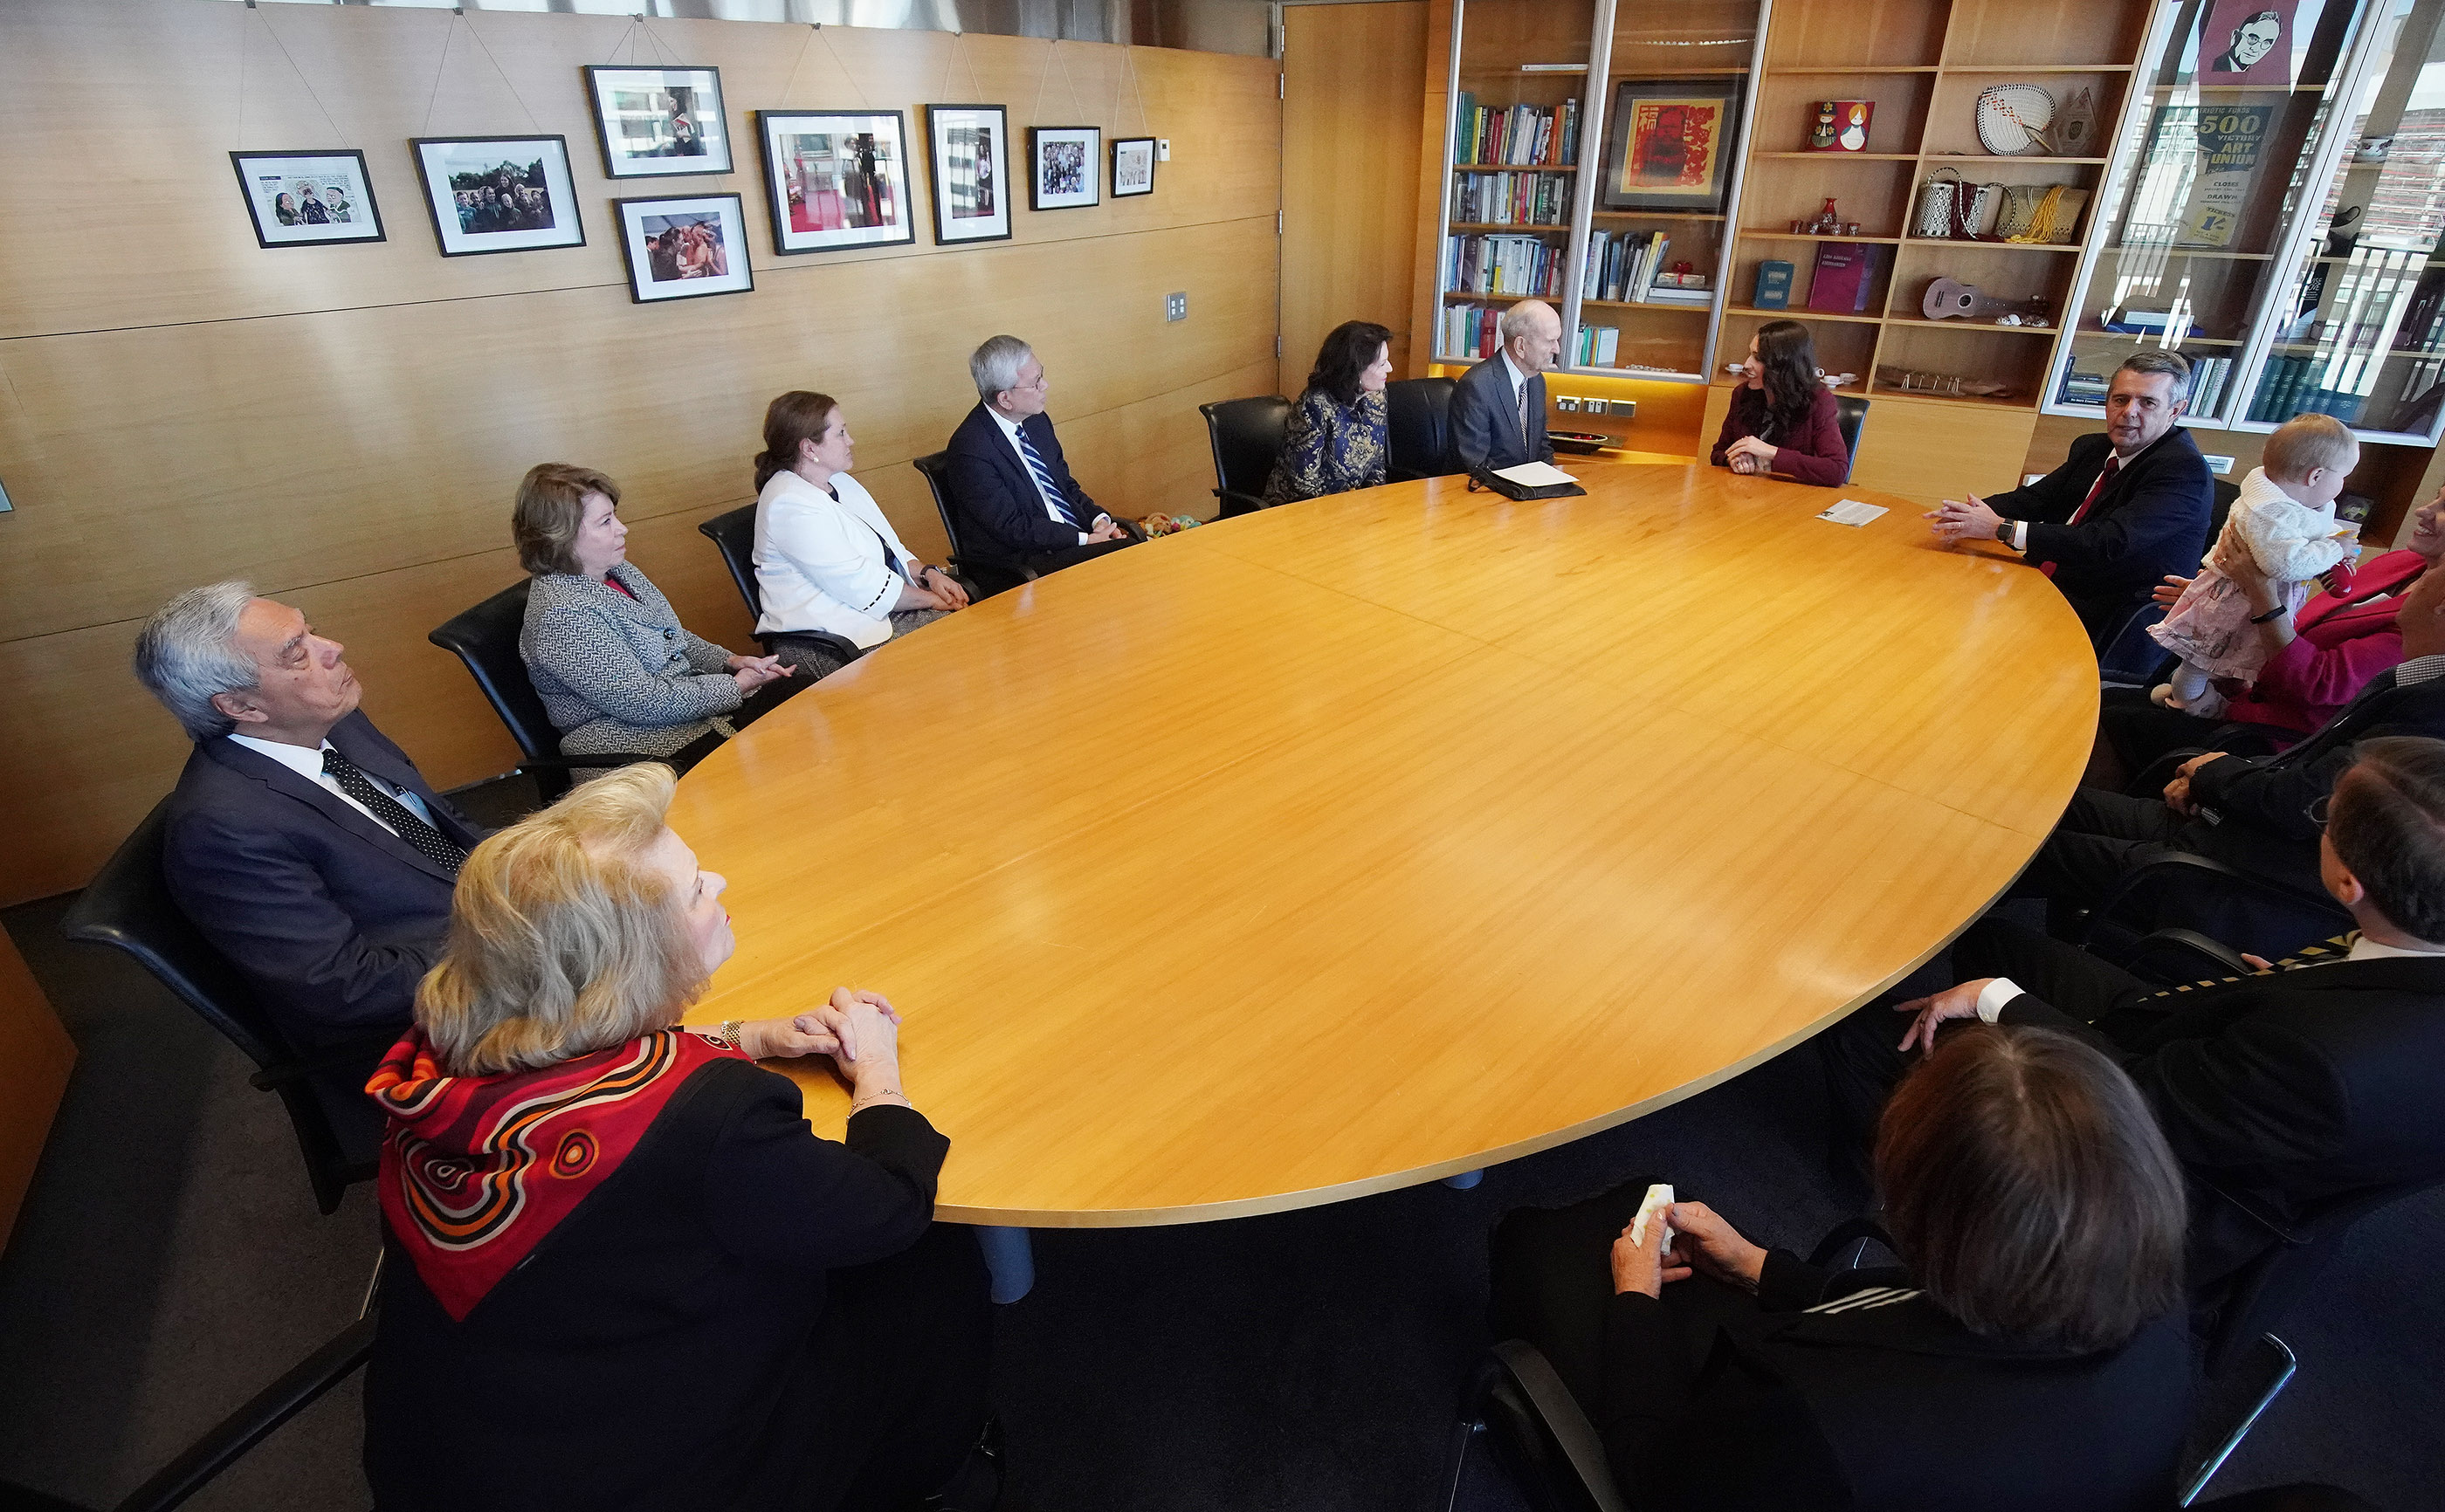 President Russell M. Nelson of The Church of Jesus Christ of Latter-day Saints and his wife, Sister Wendy Nelson, and Elder Gerrit W. Gong of the Quorum of the Twelve Apostles and his wife, Sister Susan Gong, are part of a group meeting with New Zealand Prime Minister Jacinda Ardern in Wellington, New Zealand, on Monday, May 20, 2019.